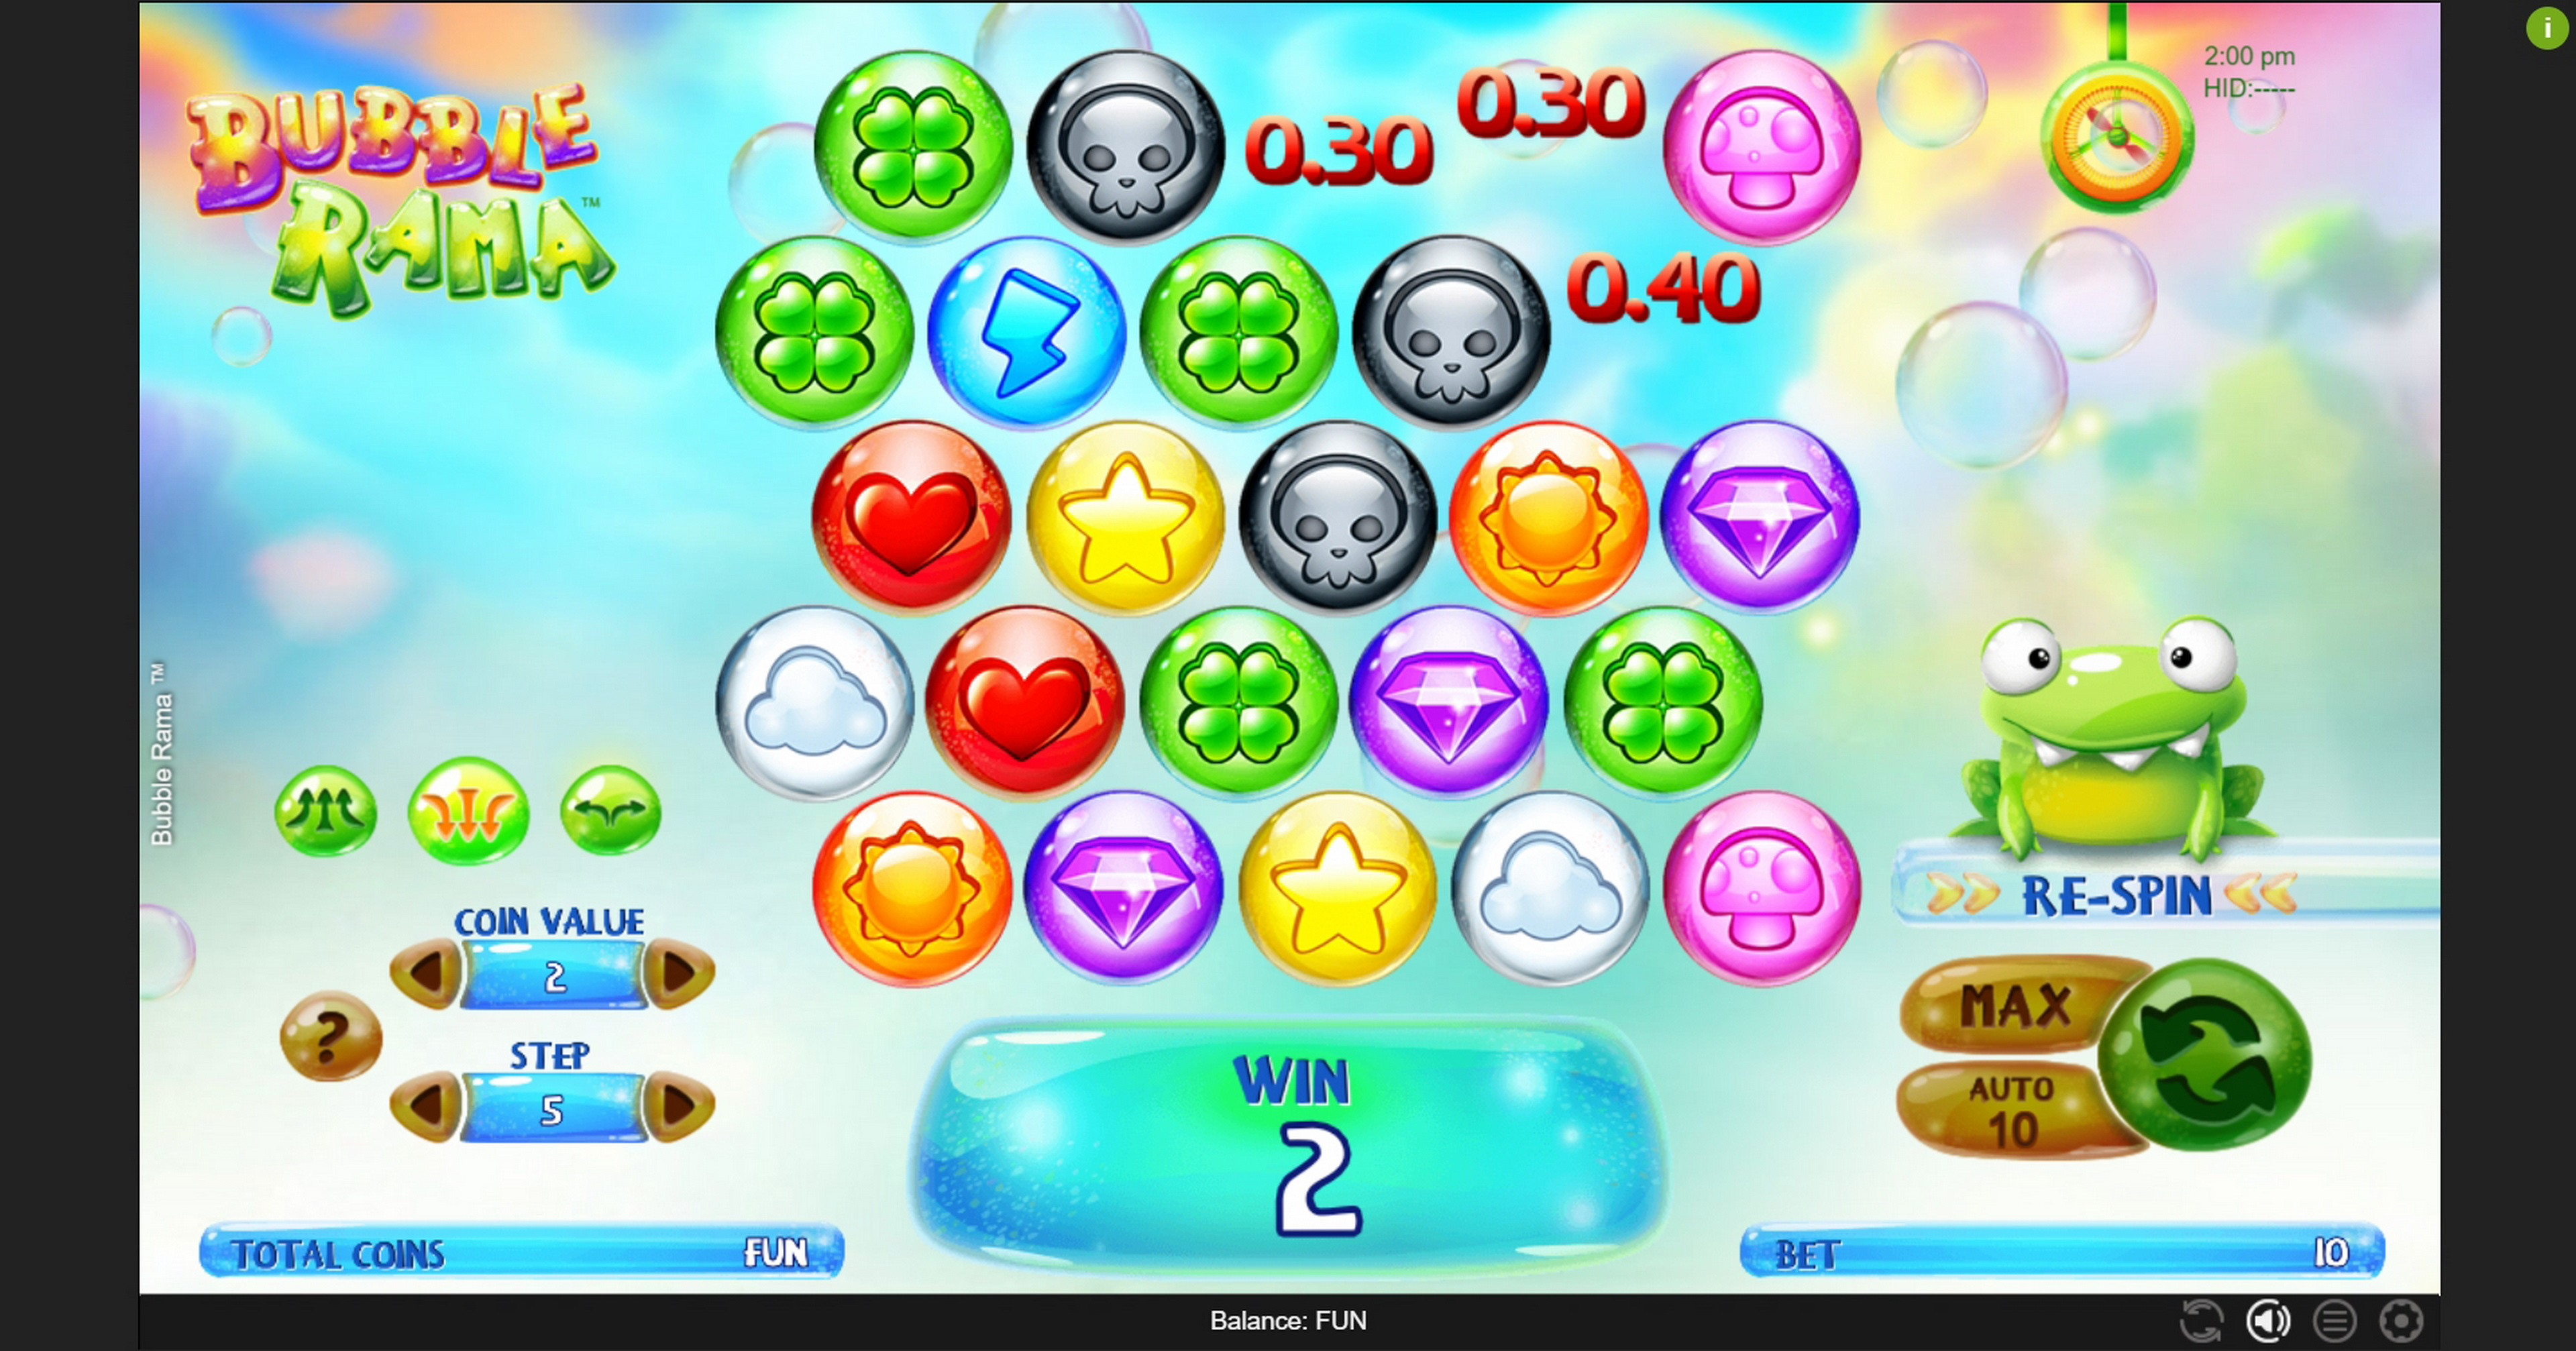 Win Money in Bubble Rama Free Slot Game by Espresso Games